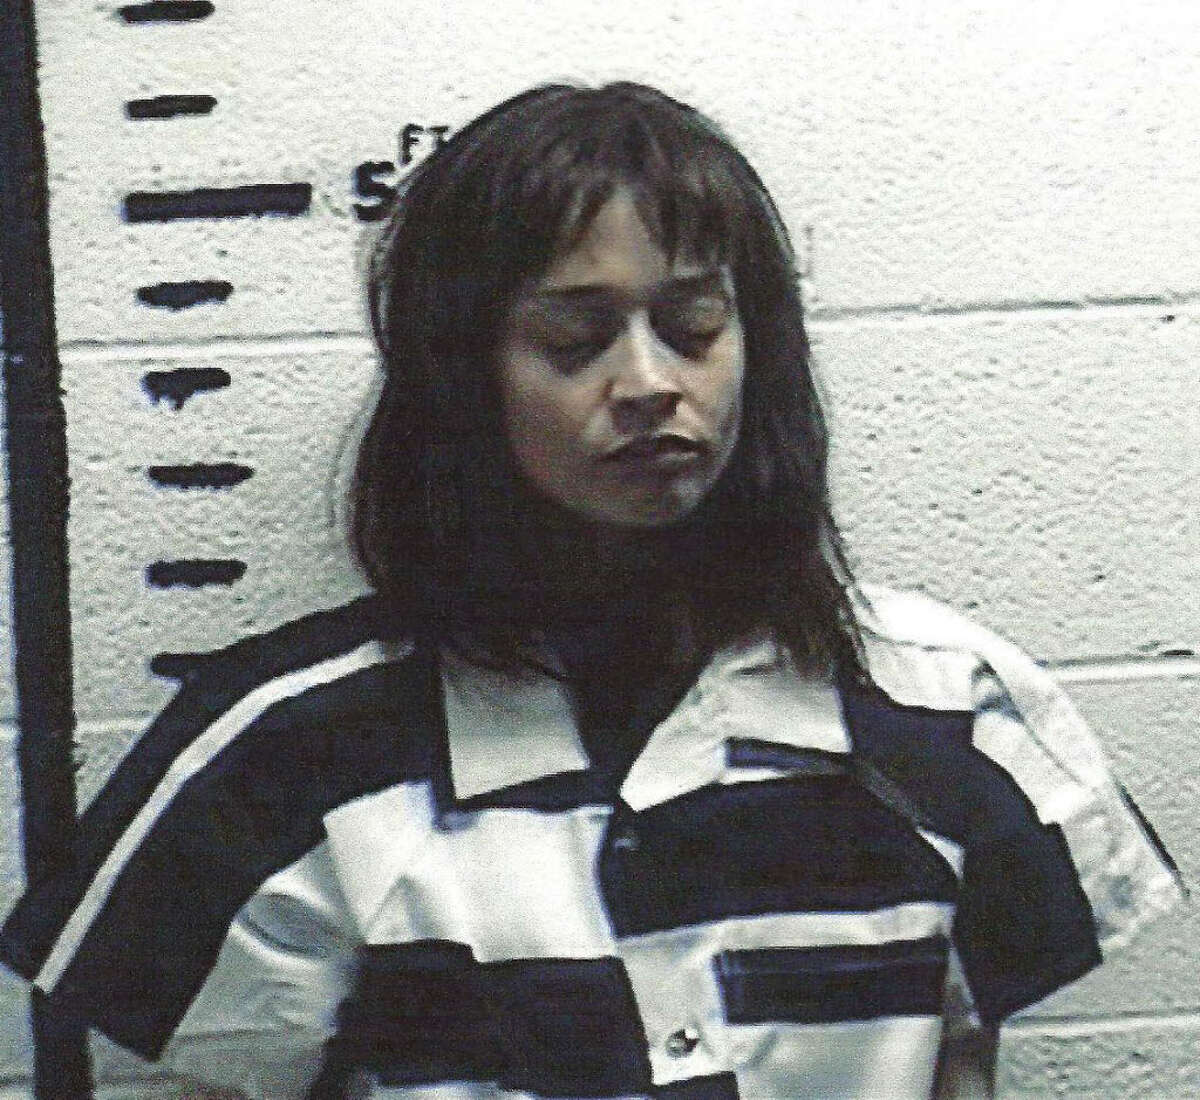 Fiona Apple The singer-songwriter spent a night in jail in 2012, when authorities at a border stop in Sierra Blanca, Texas alleged they found hashish on her tour bus. There were seven other people on the bus, but Apple admitted the drugs were hers and everybody else was allowed to drive on.